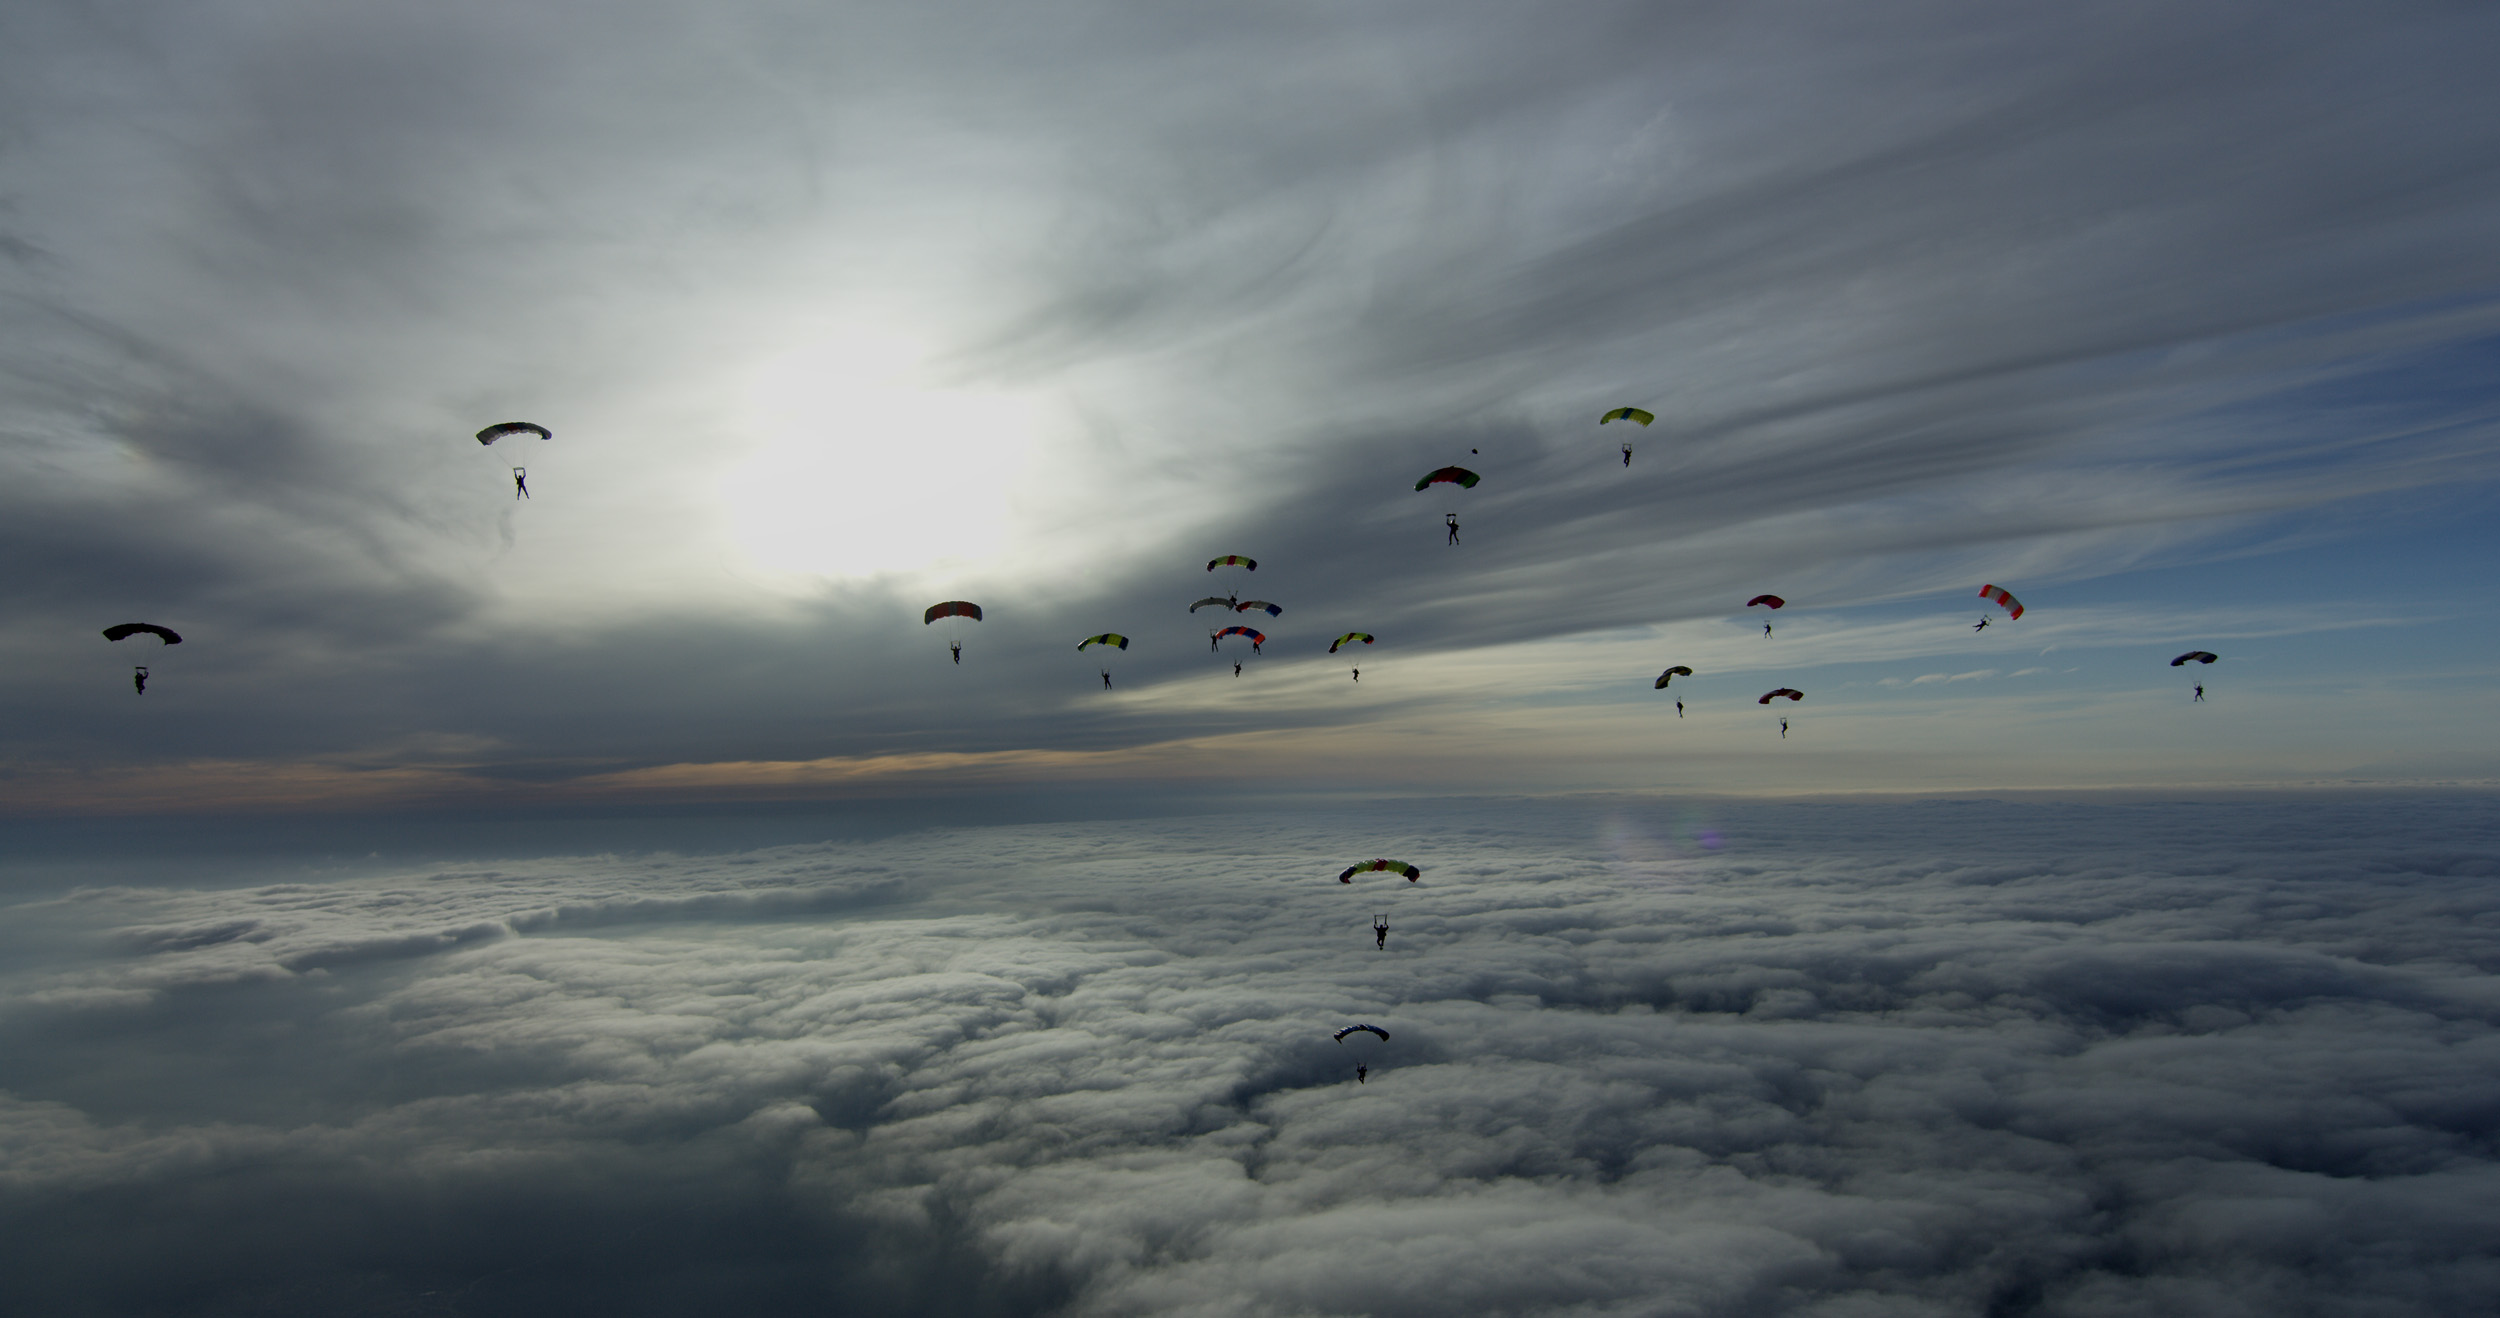 Experienced skydivers, ready for film action